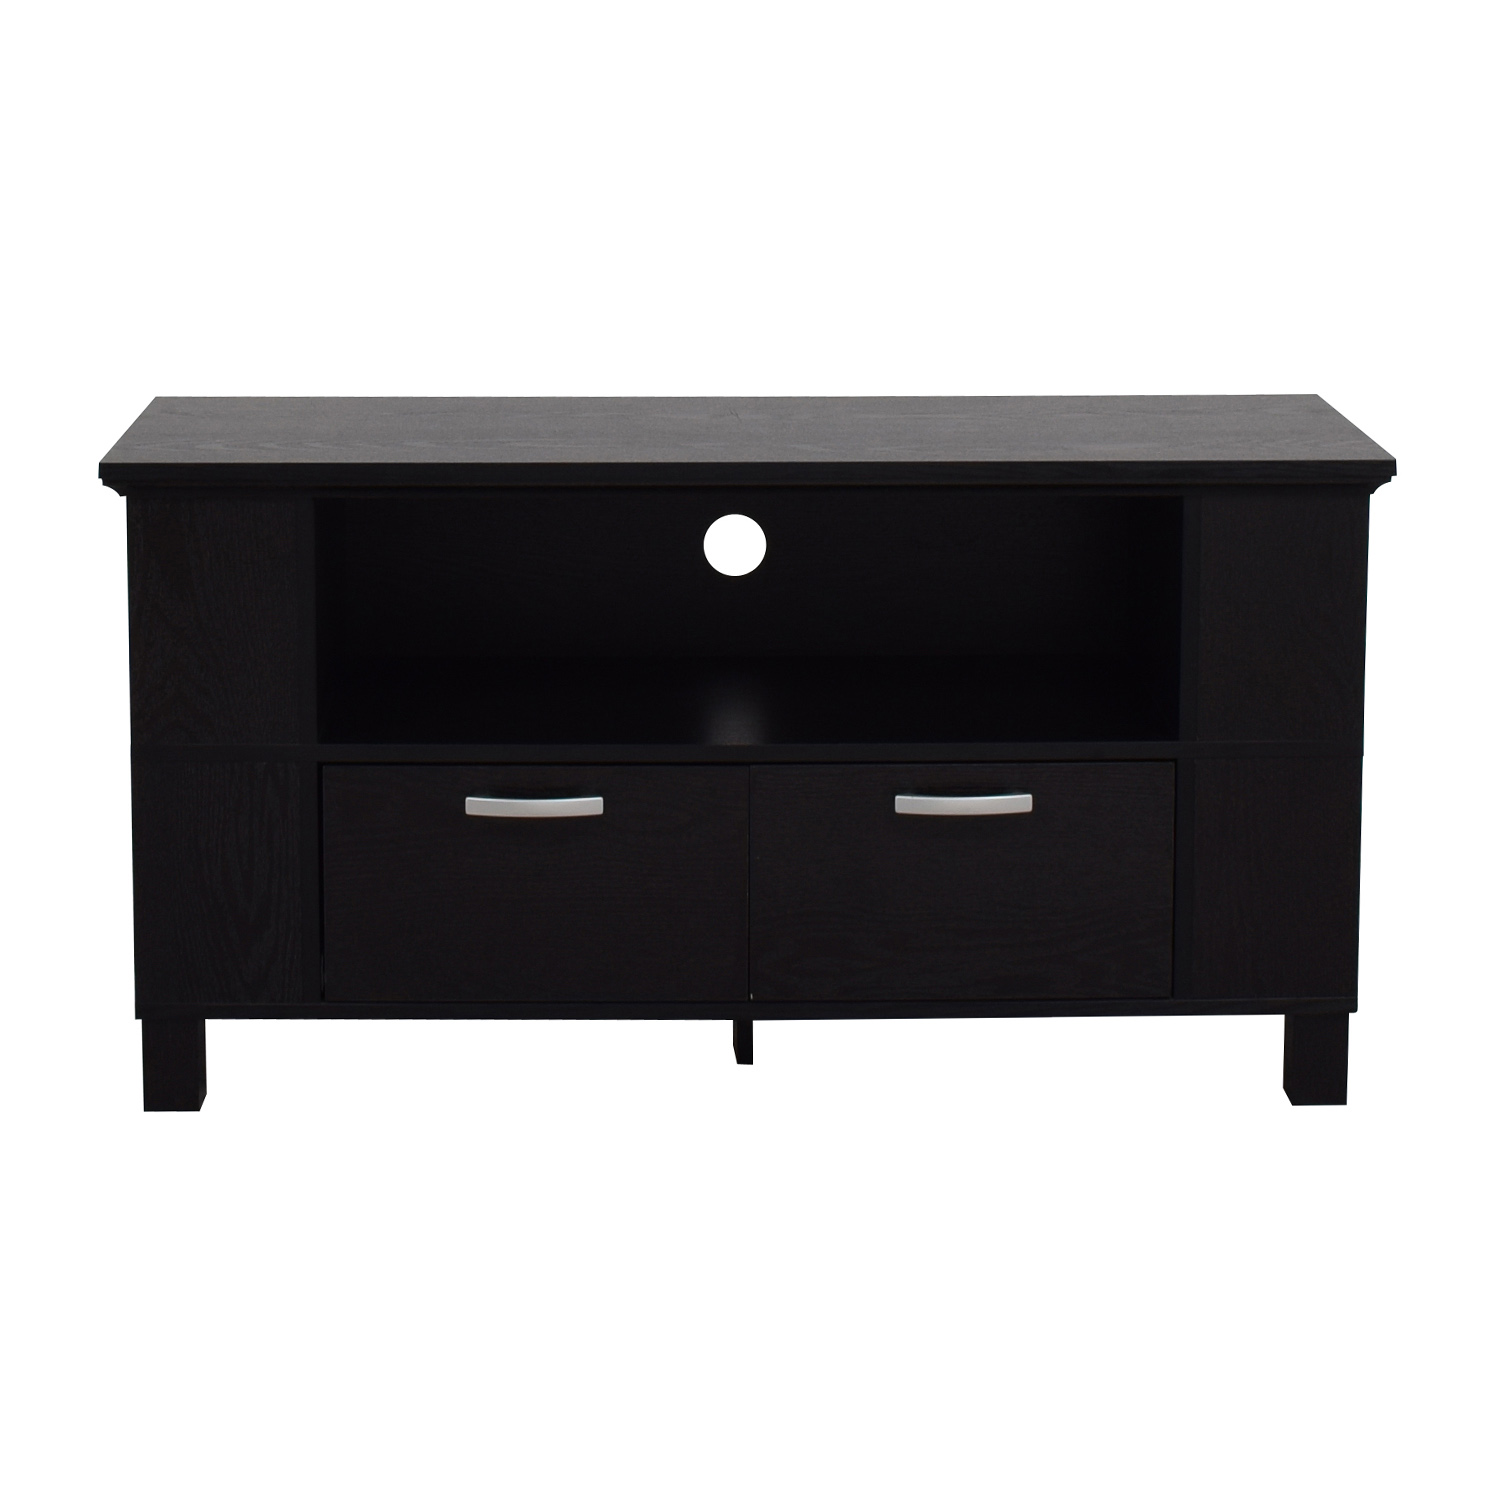 Espresso TV Stand with Two Drawers with Chrome Handles second hand